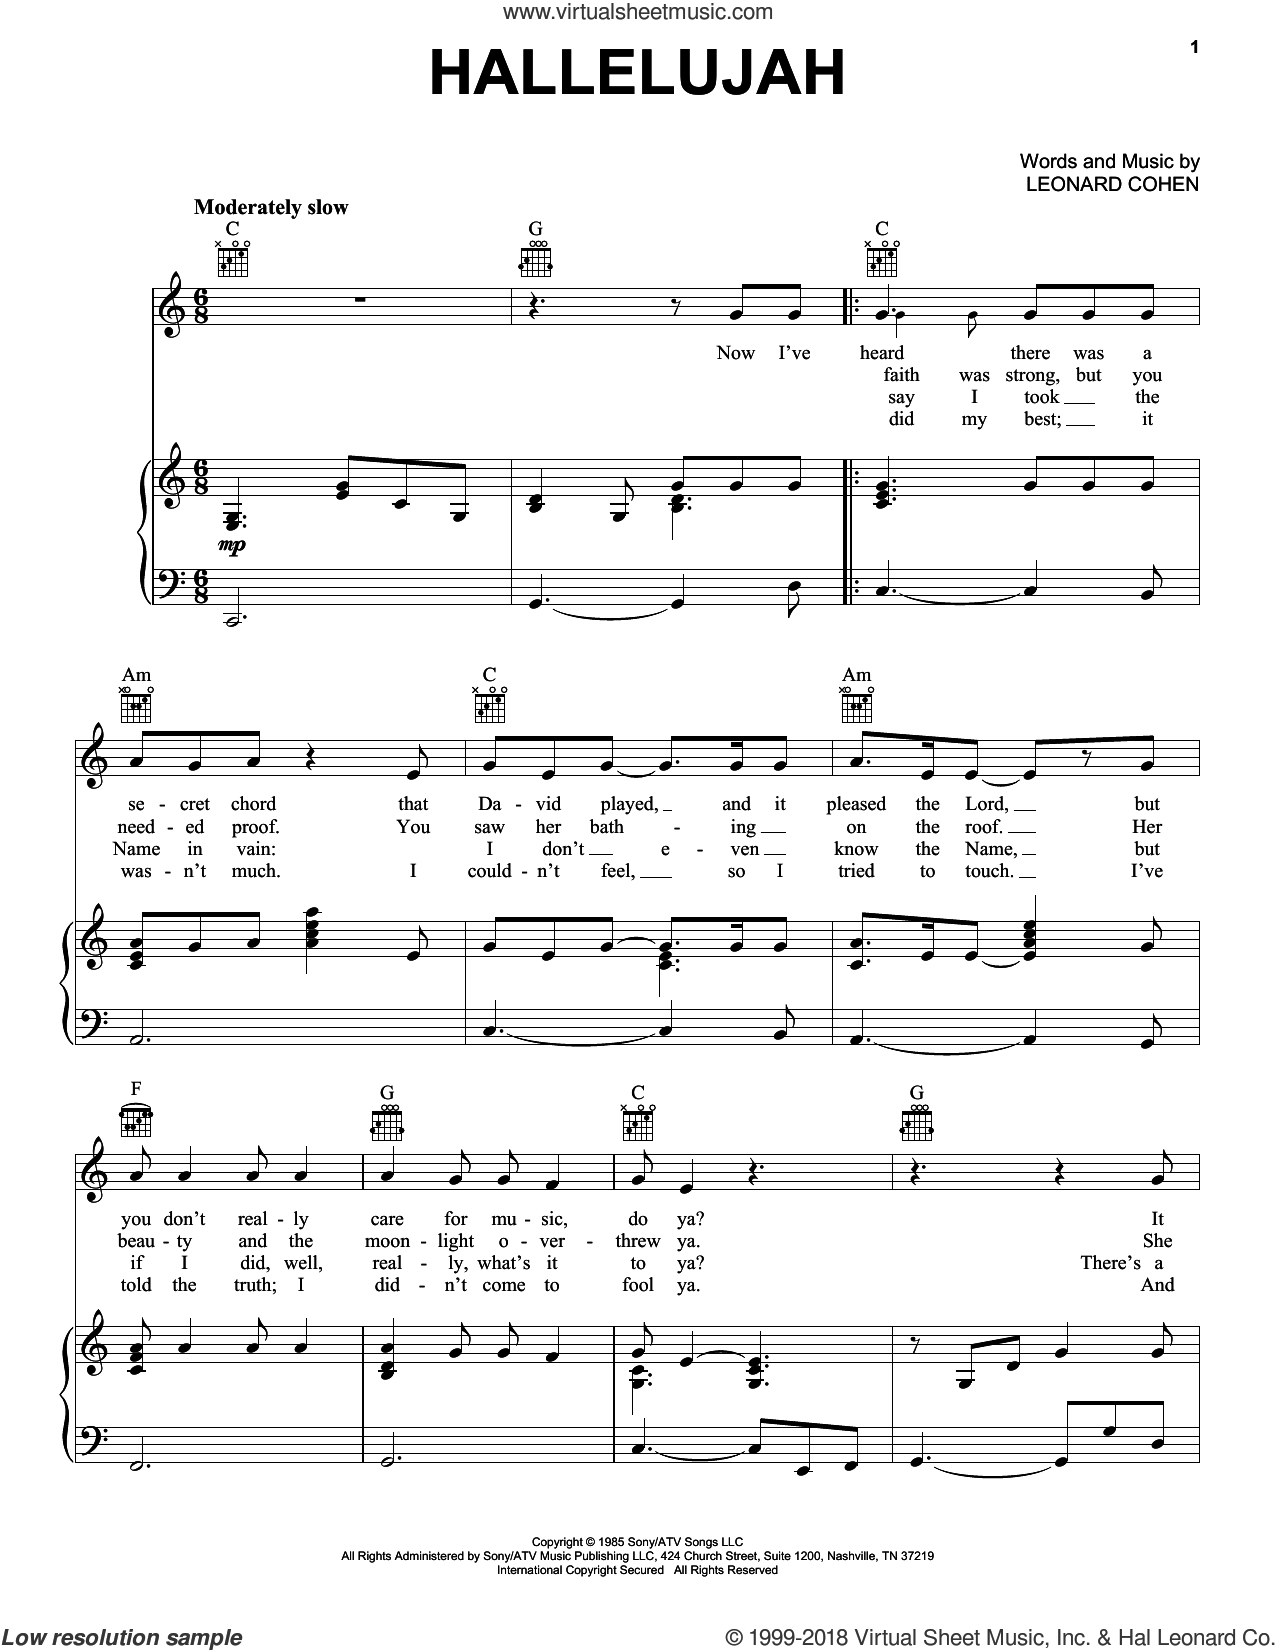 Cohen - Hallelujah Sheet Music For Voice, Piano Or Guitar [Pdf] - Free Printable Piano Sheet Music For Hallelujah By Leonard Cohen